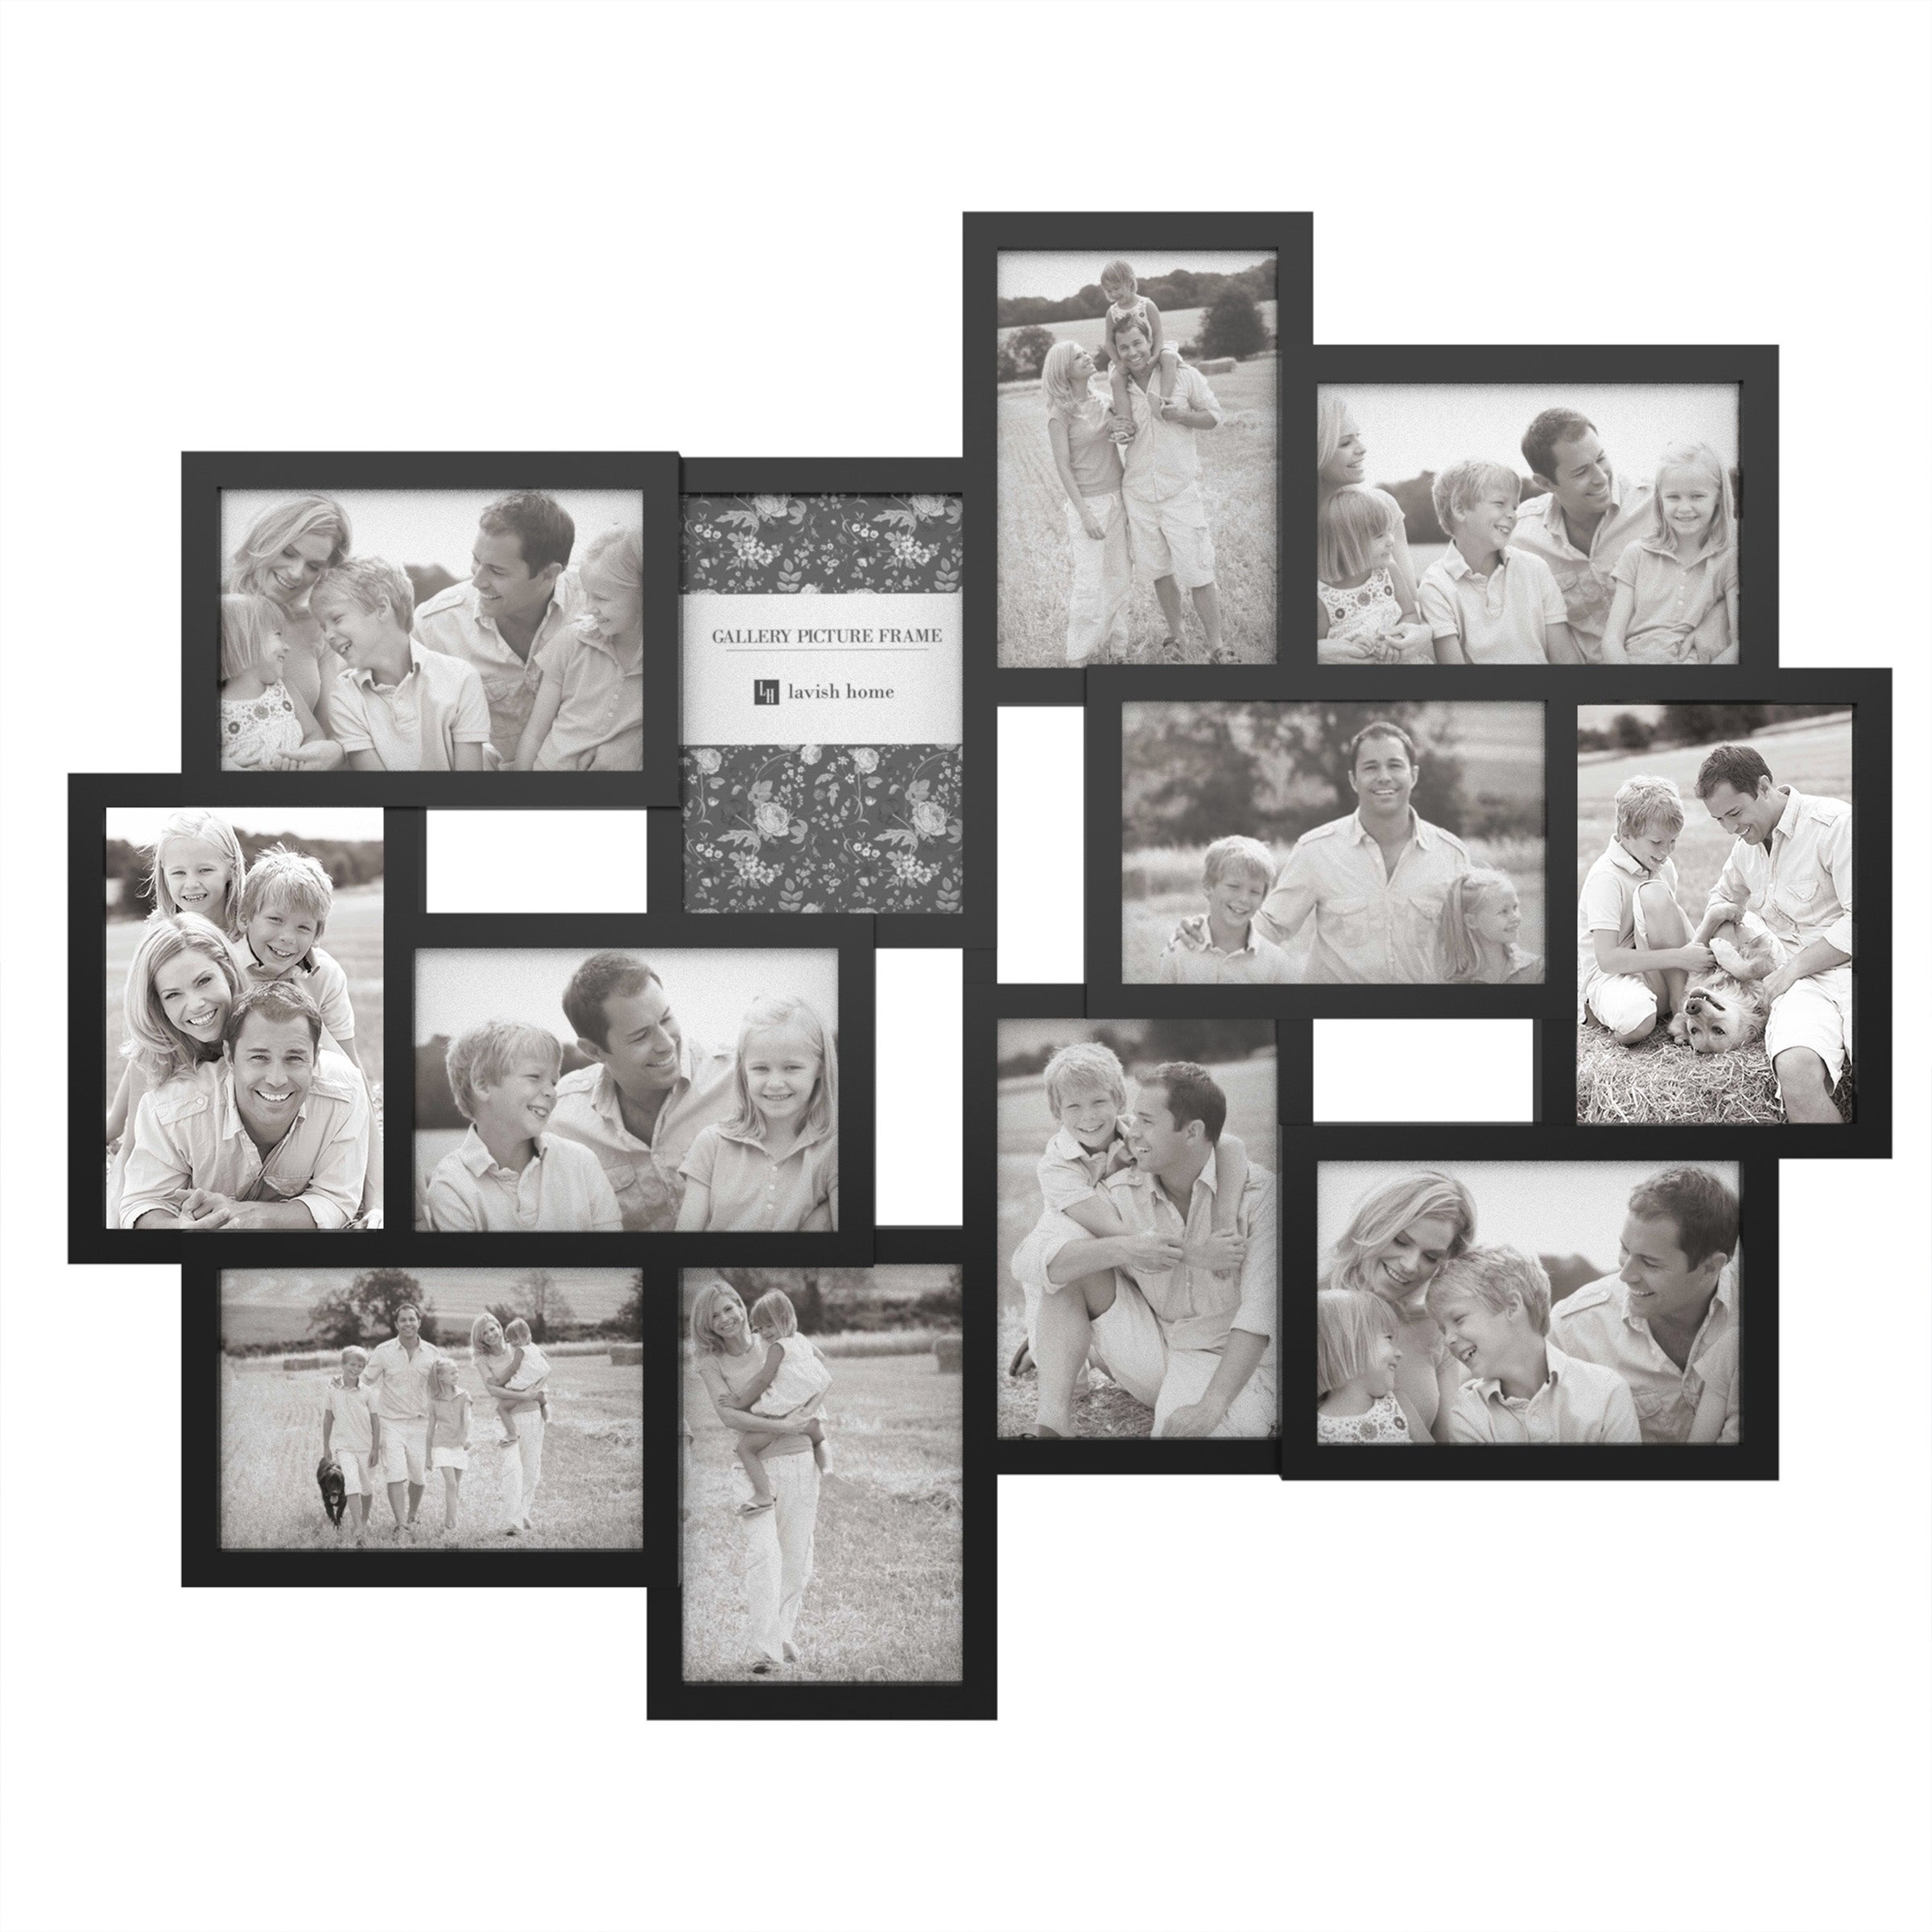 Shop Collage Picture Frame With 12 Openings For 4x6 Photos By